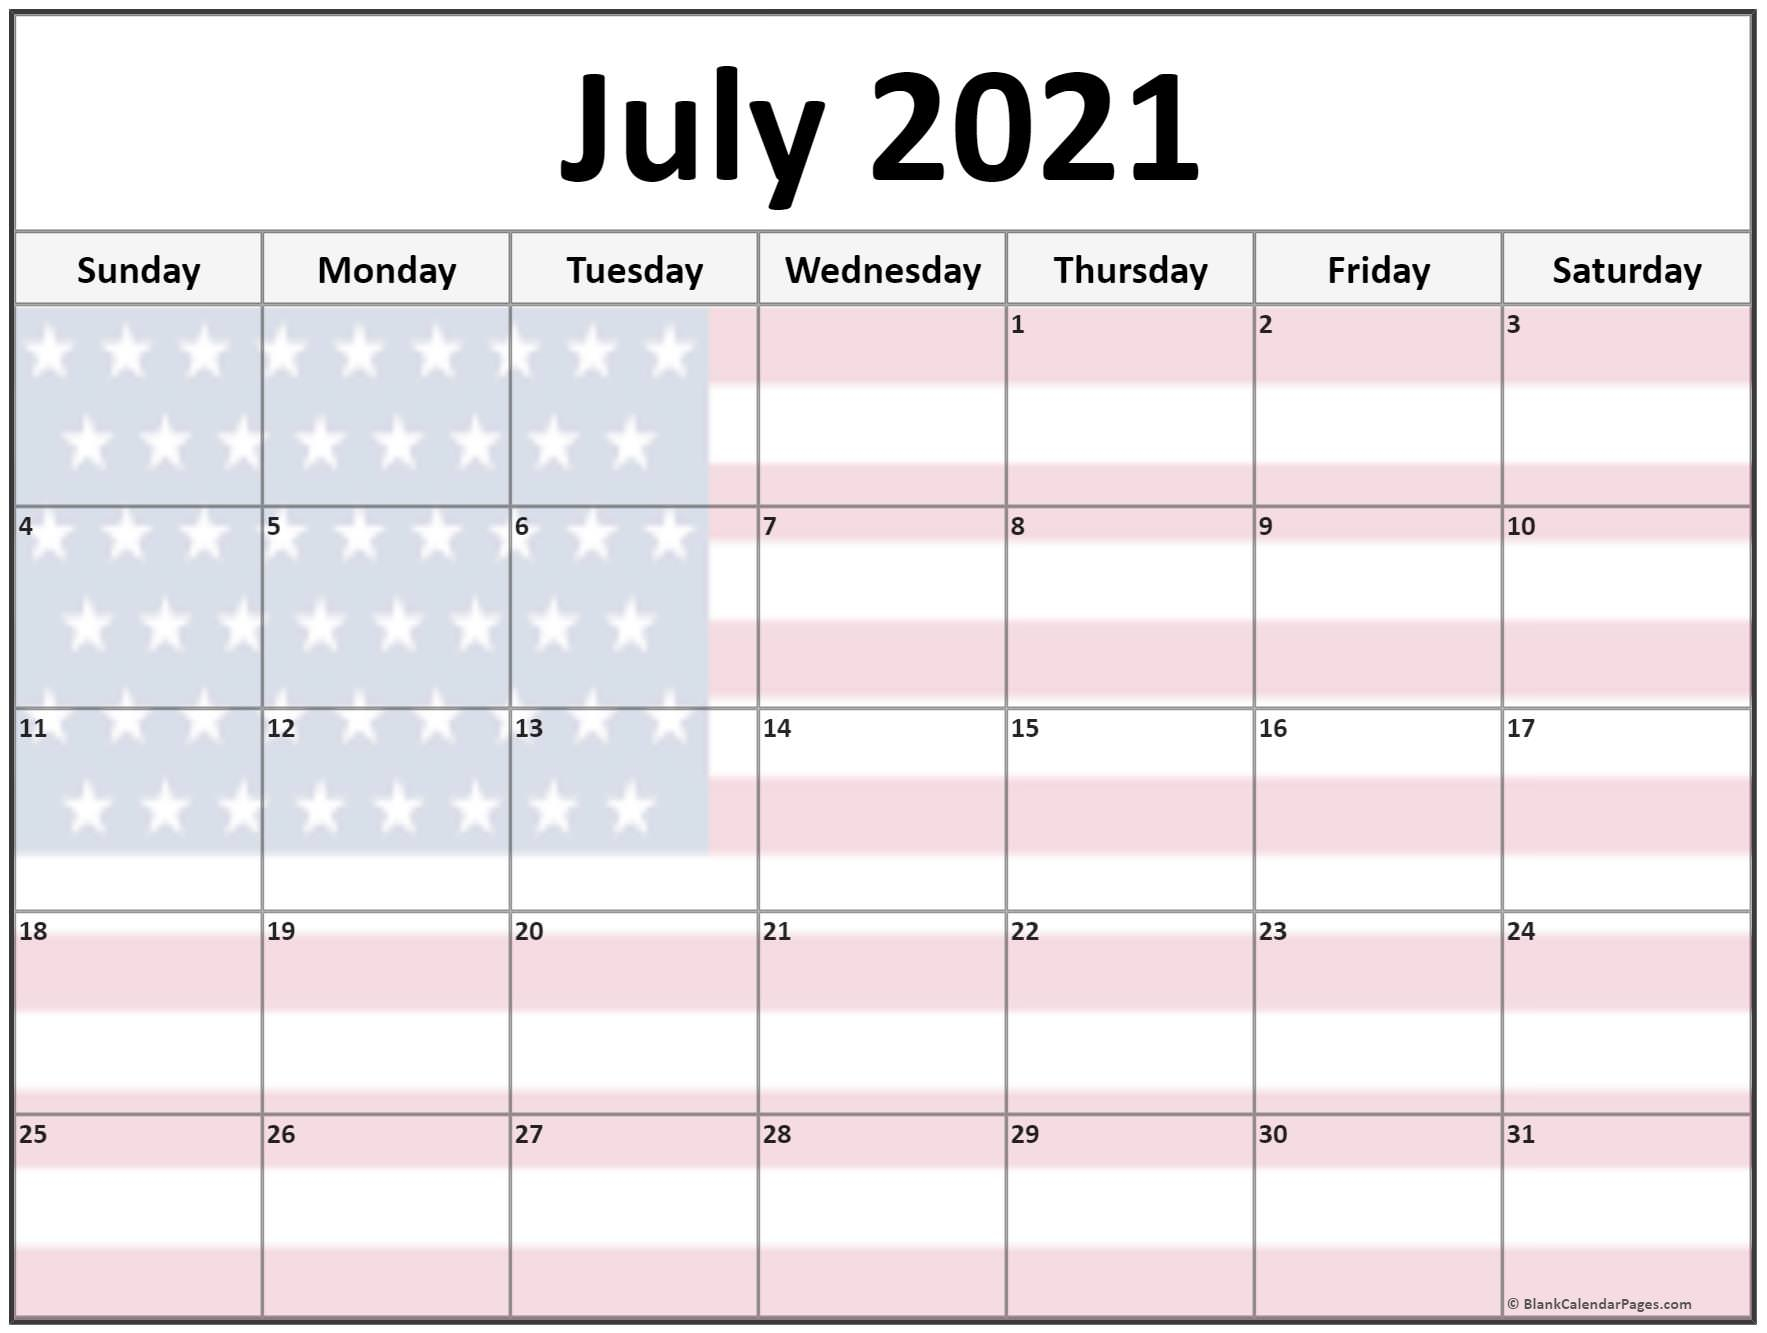 Collection Of July 2021 Photo Calendars With Image Filters